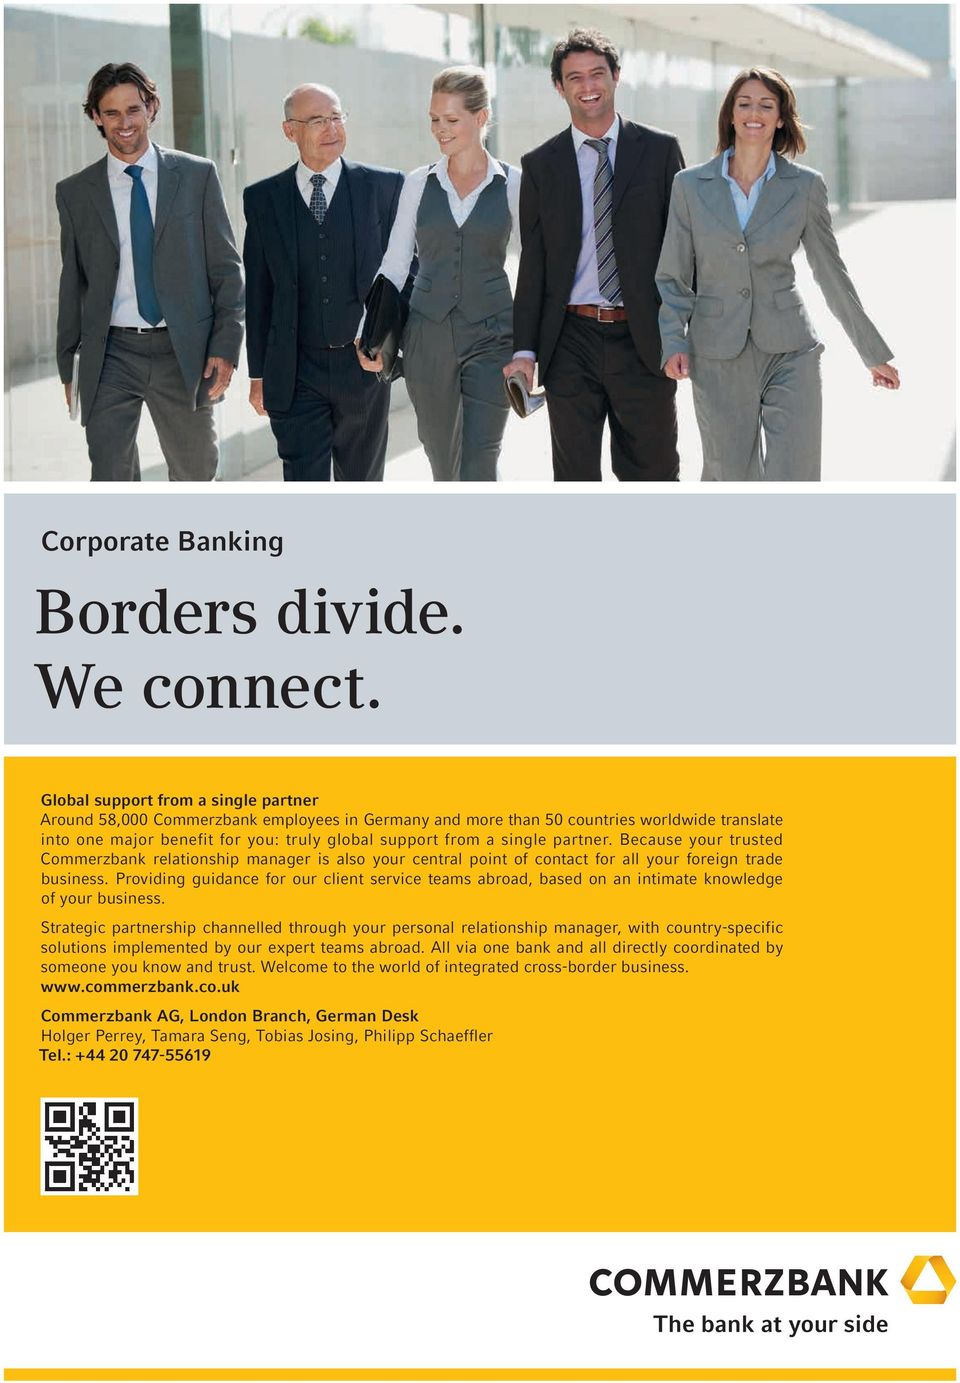 partner. Because your trusted Commerzbank relationship manager is also your central point of contact for all your foreign trade business.